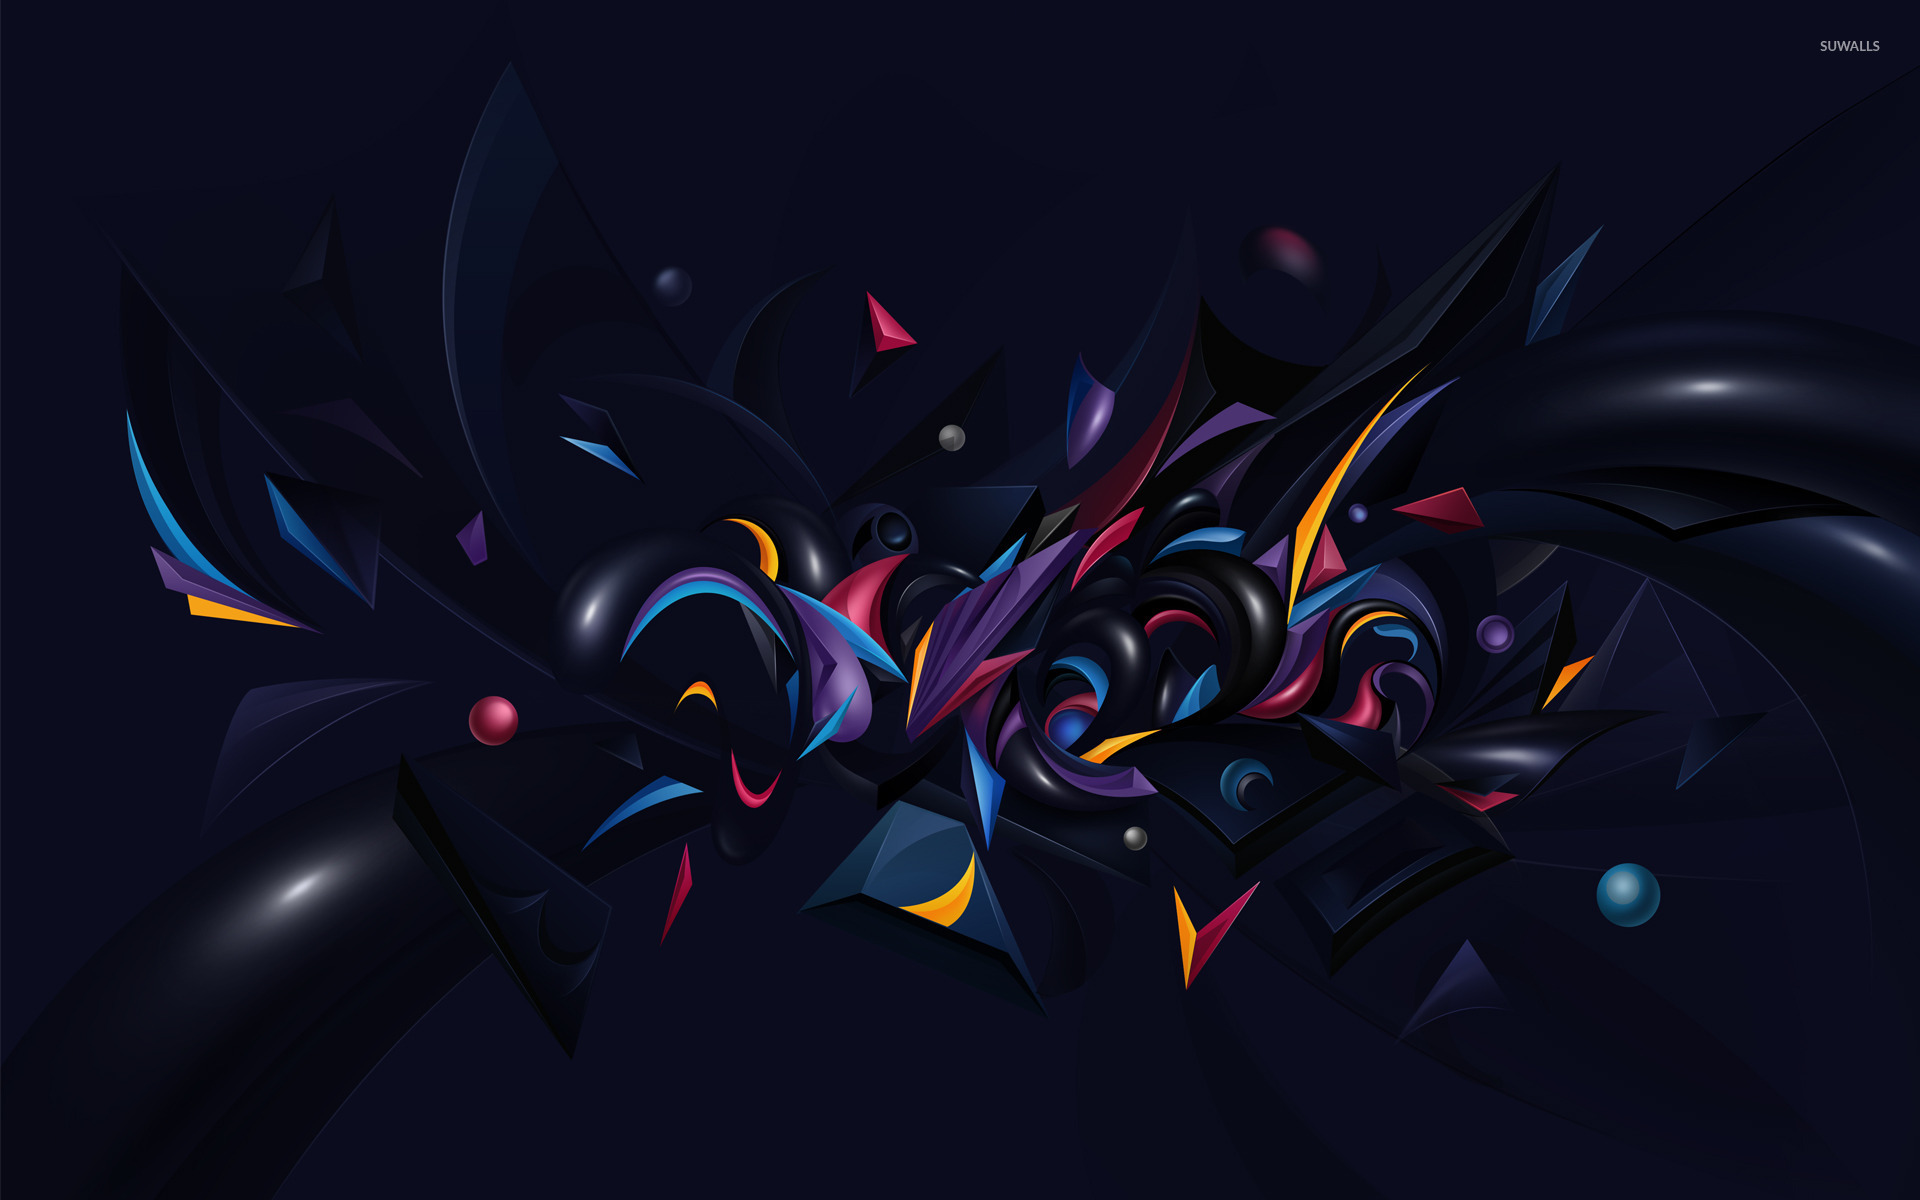 Colorful Shapes On A Dark Background Wallpaper